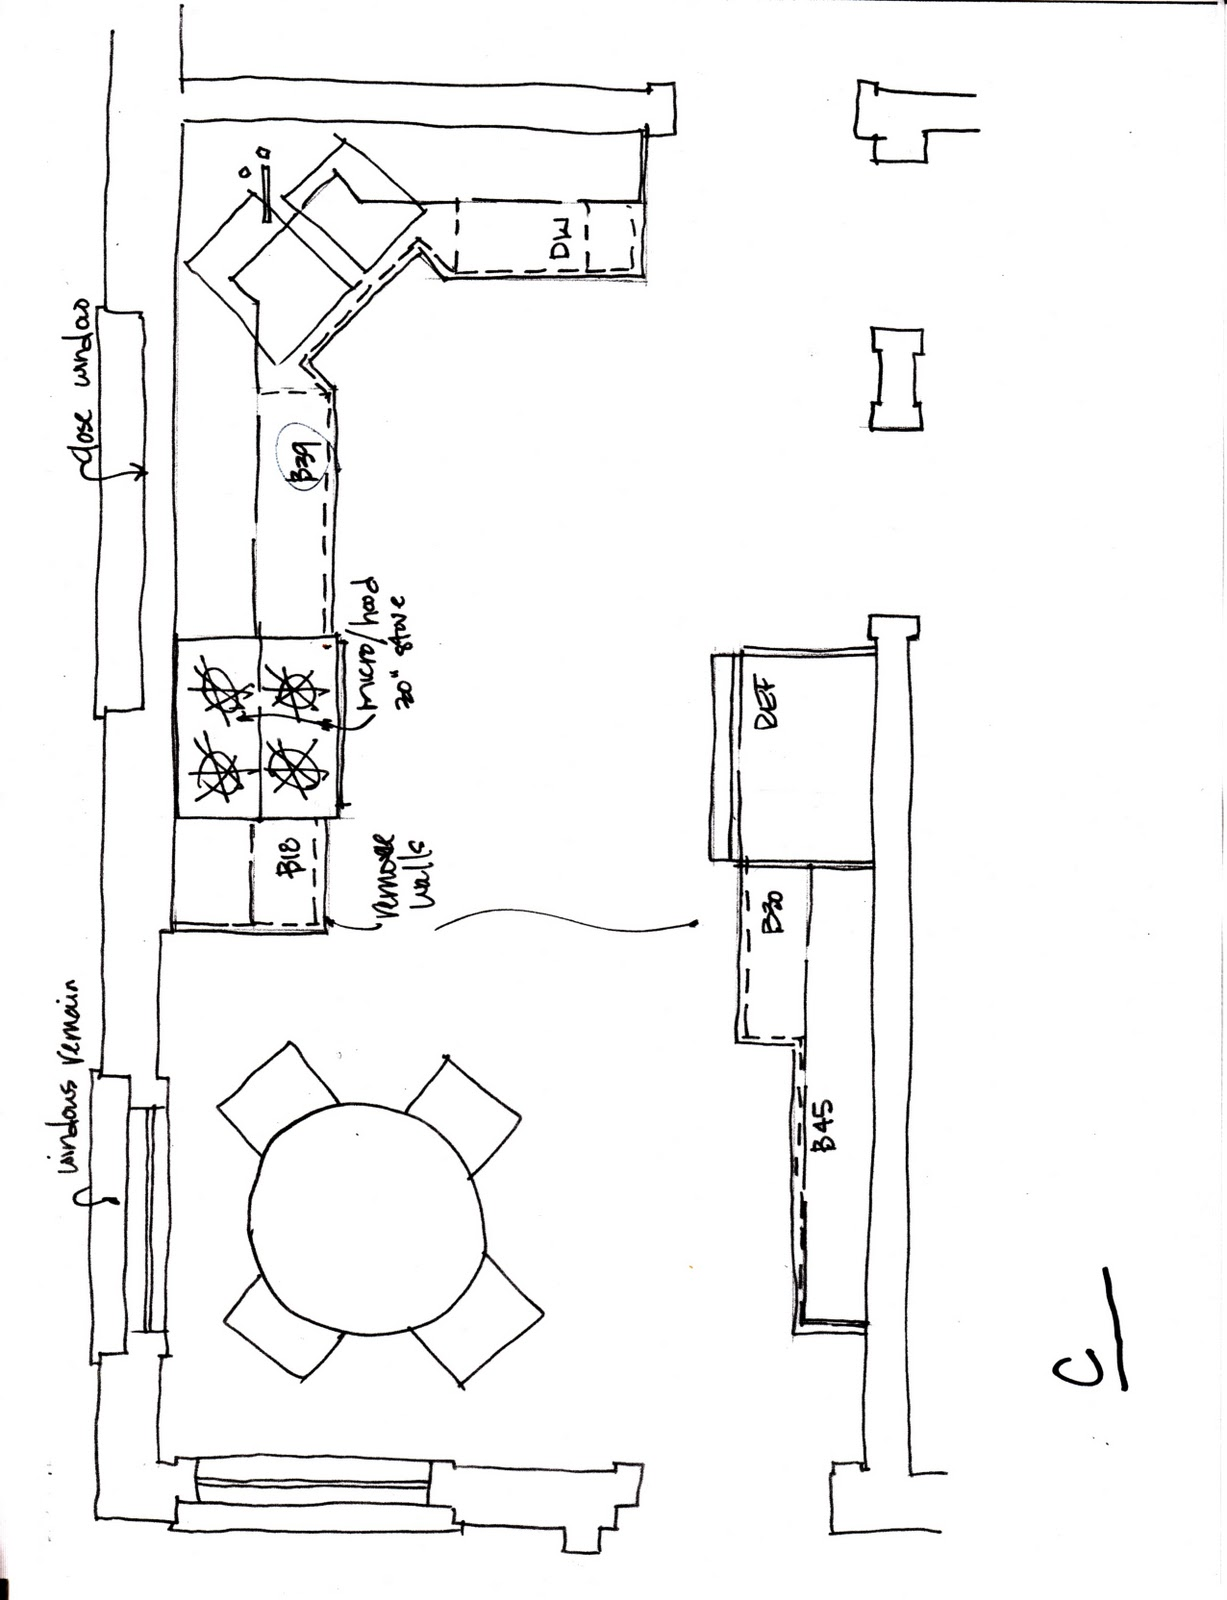 Small kitchen layouts plans afreakatheart Kitchen design layout photos